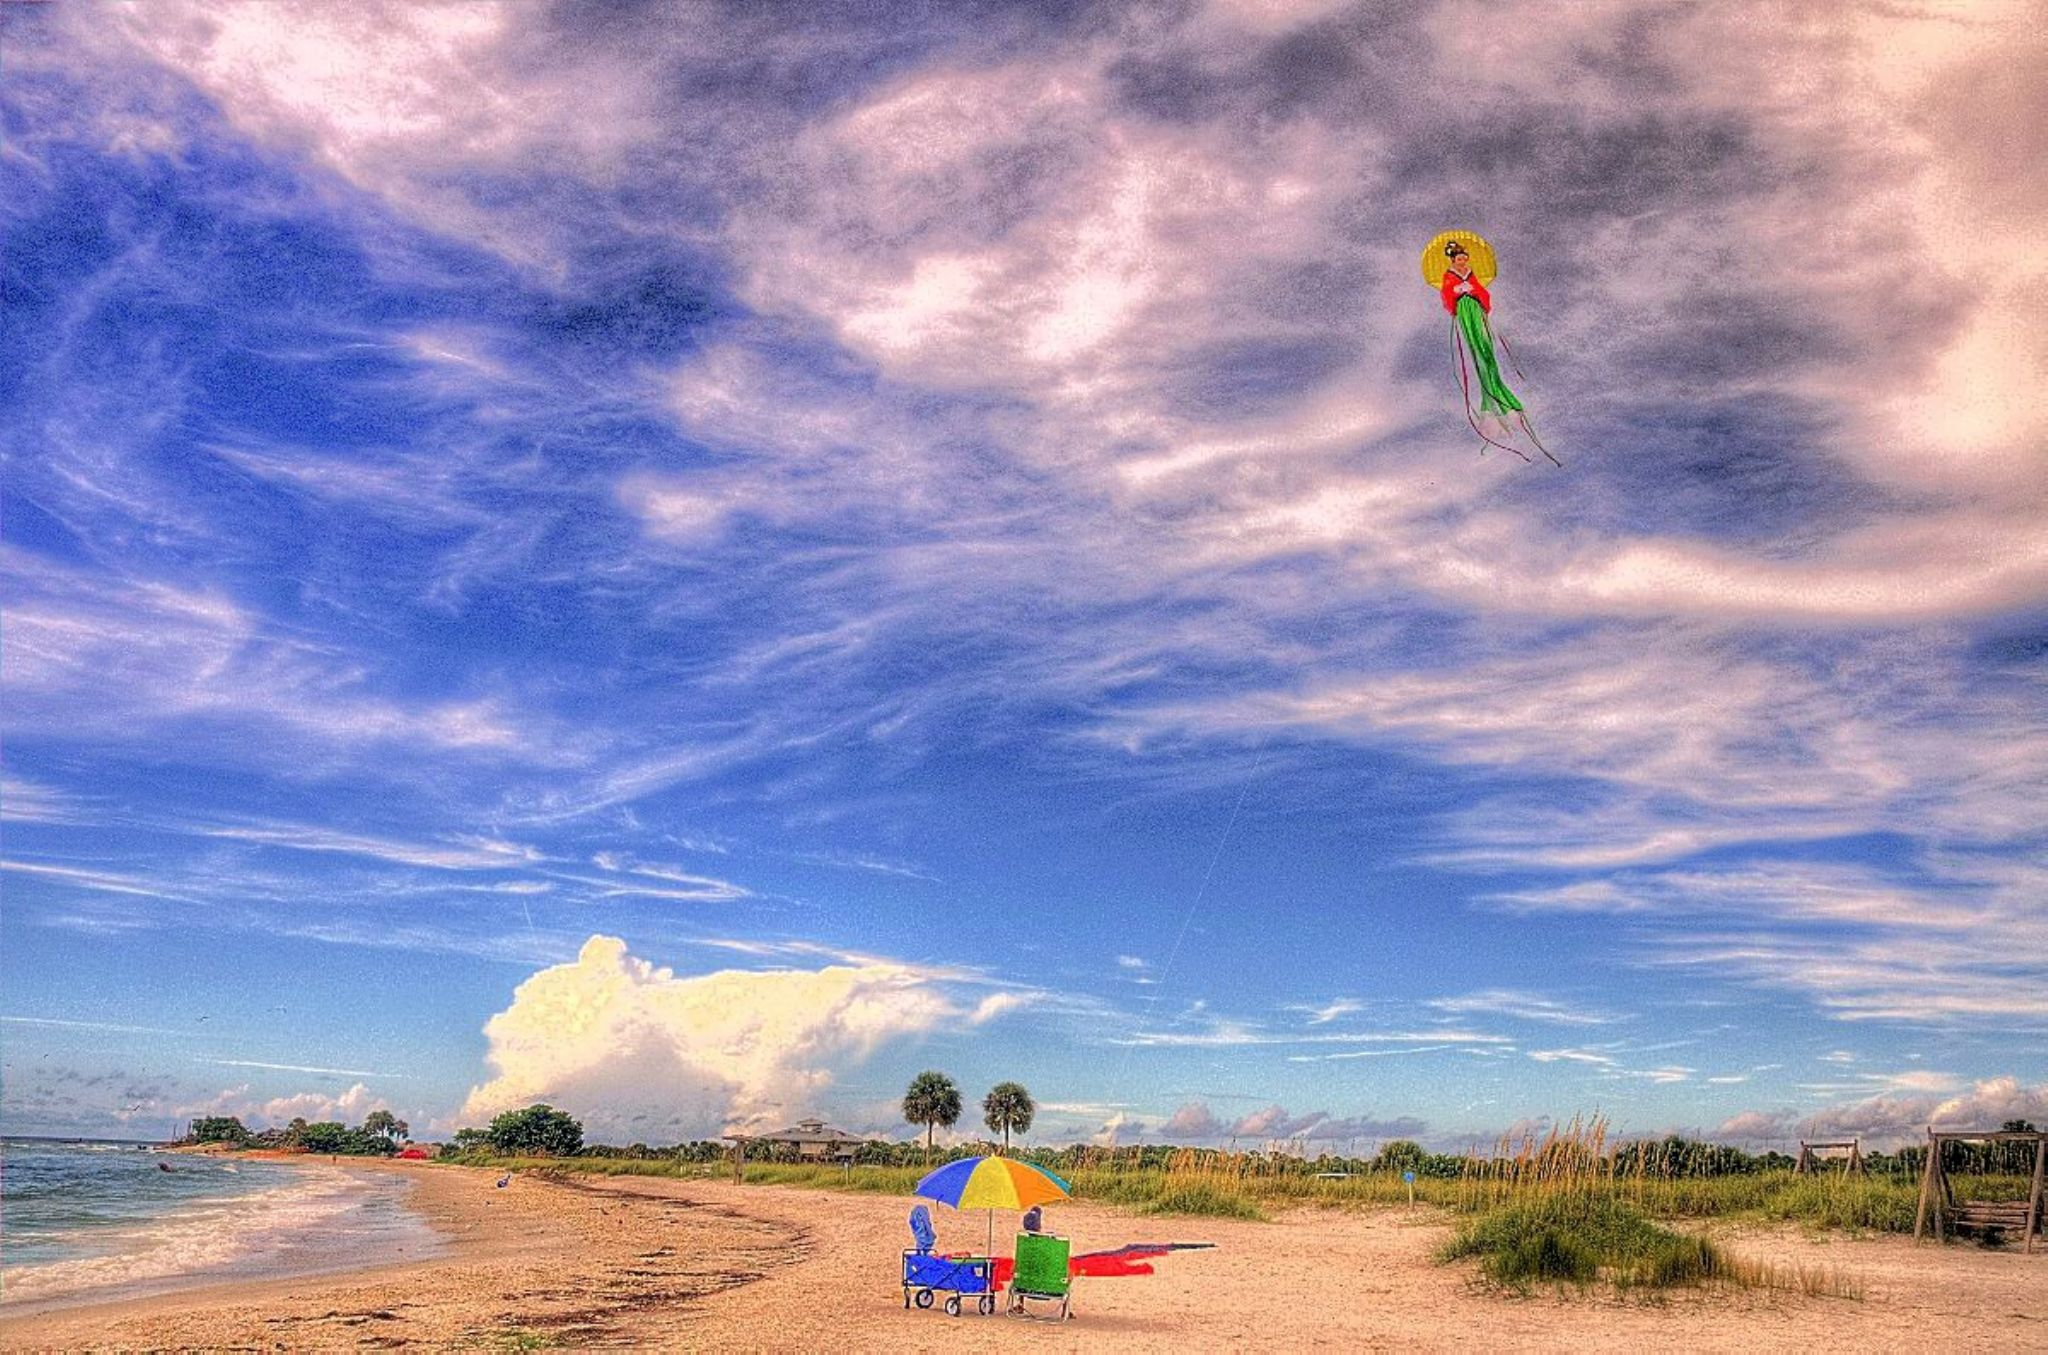 The Kite Flyer by anthonydonahue10